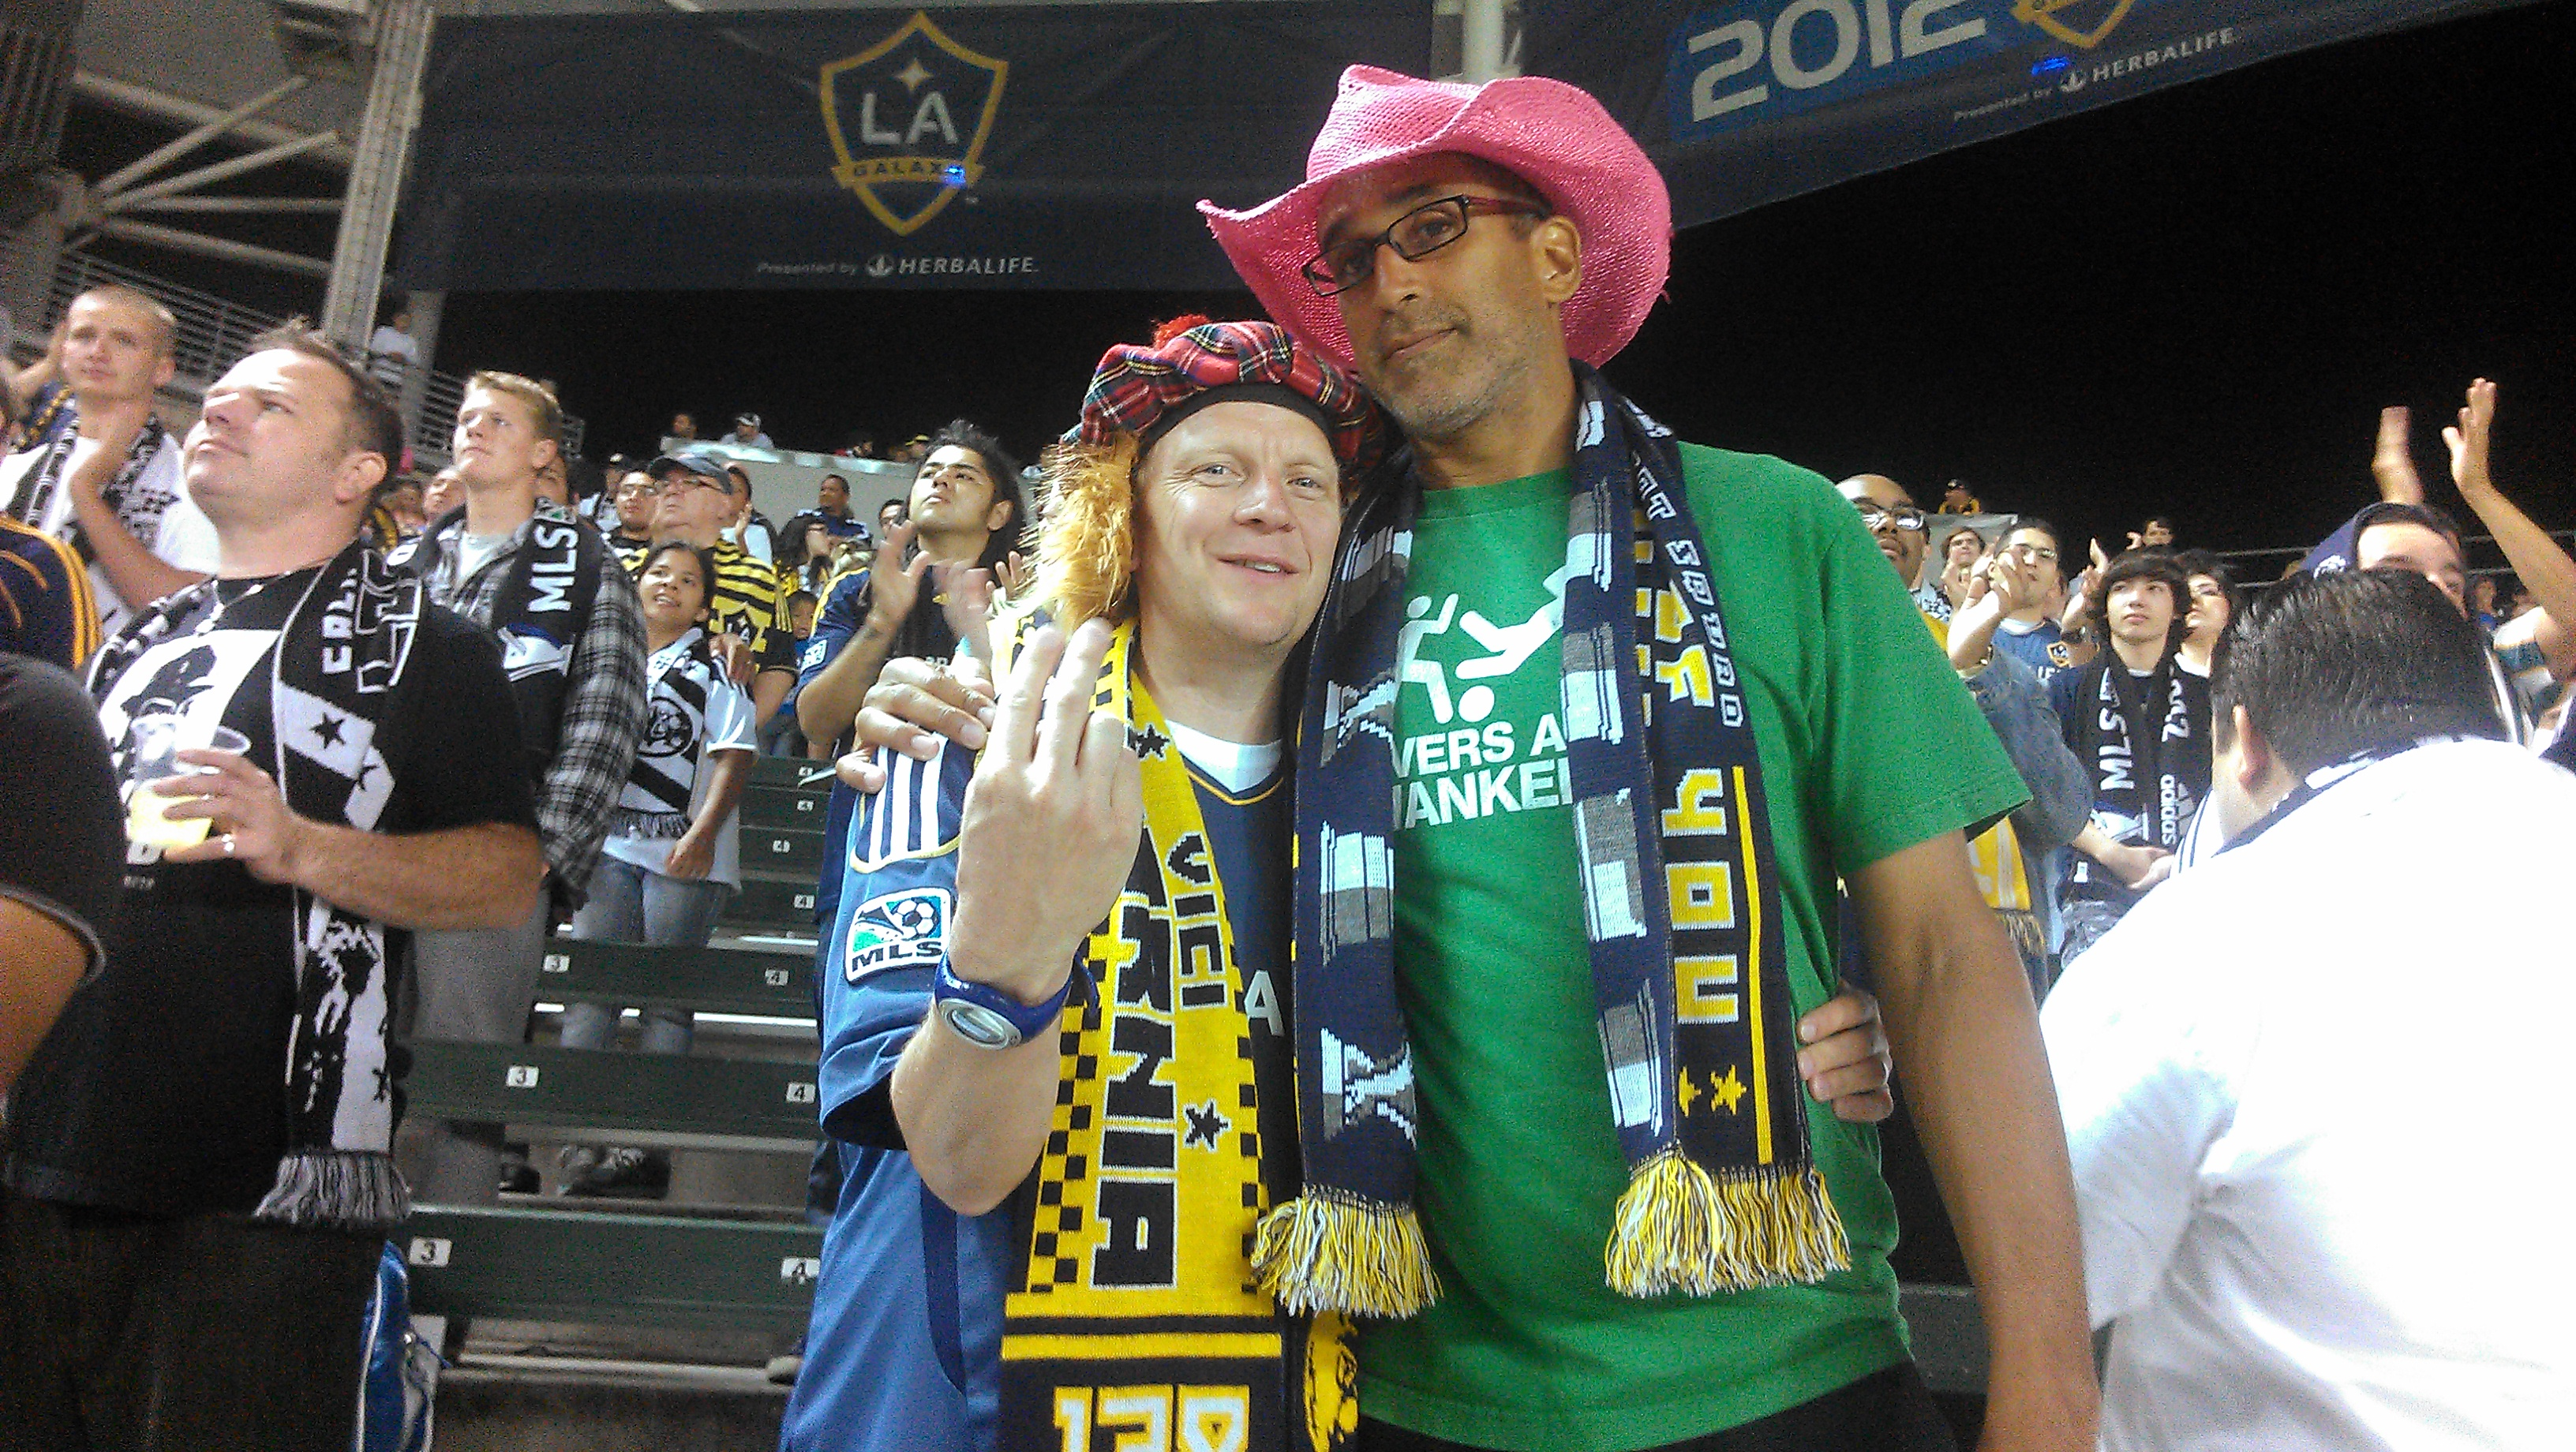 Members Of The La Riot Squad A Supporter Group Of The La Galaxy